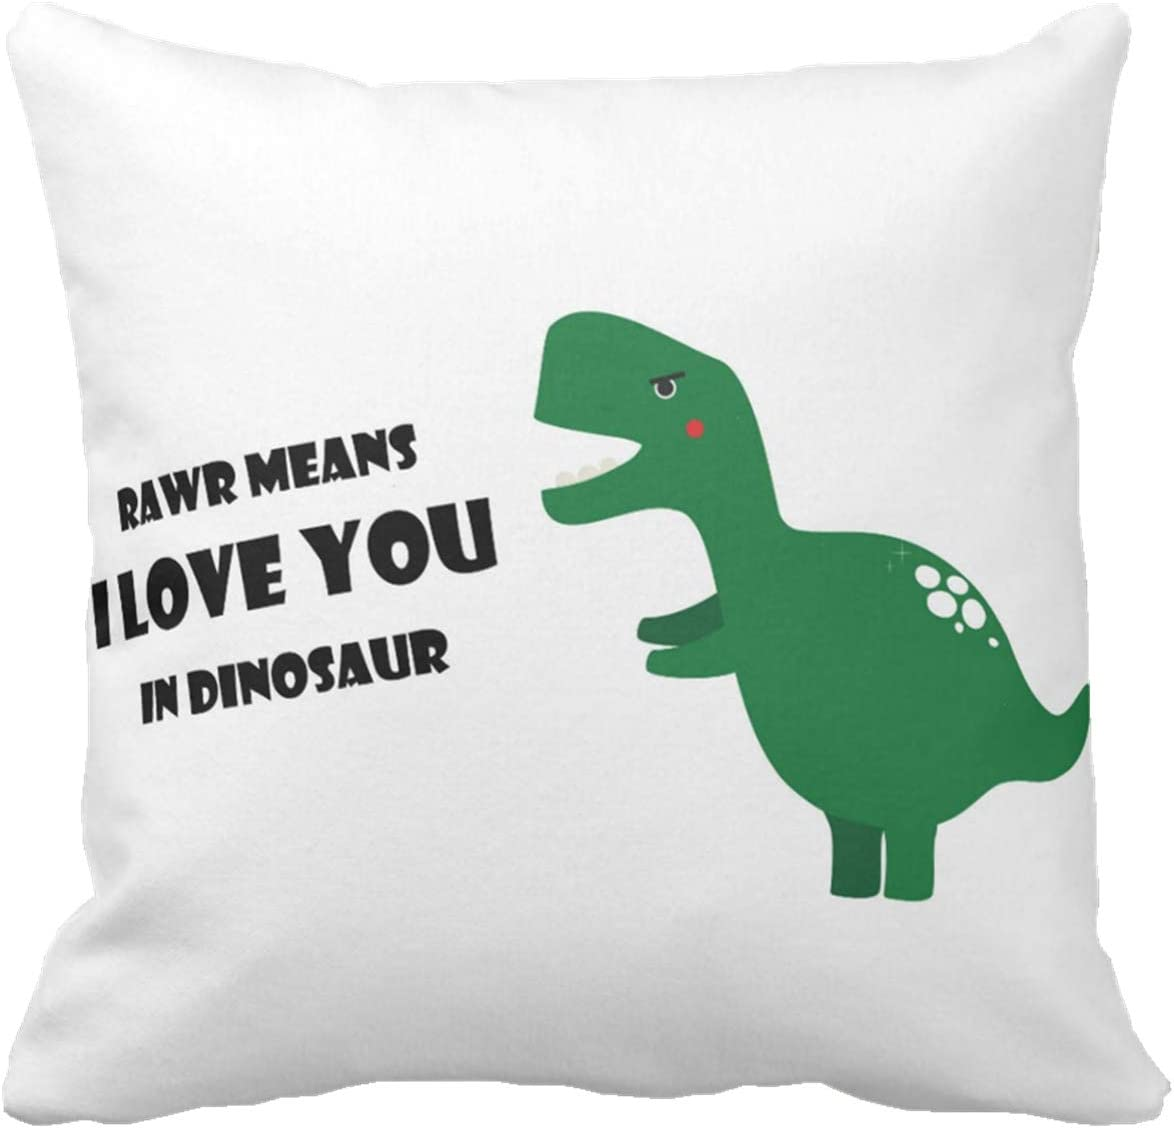 Kissenday 18X18 Inch Rawr Means I Love You in Dinosaur Humorous Quote Cotton Polyester Decorative Home Decor Sofa Couch Desk Chair Bed Car Lovely Saying Birthday Gift Square Throw Pillow Case